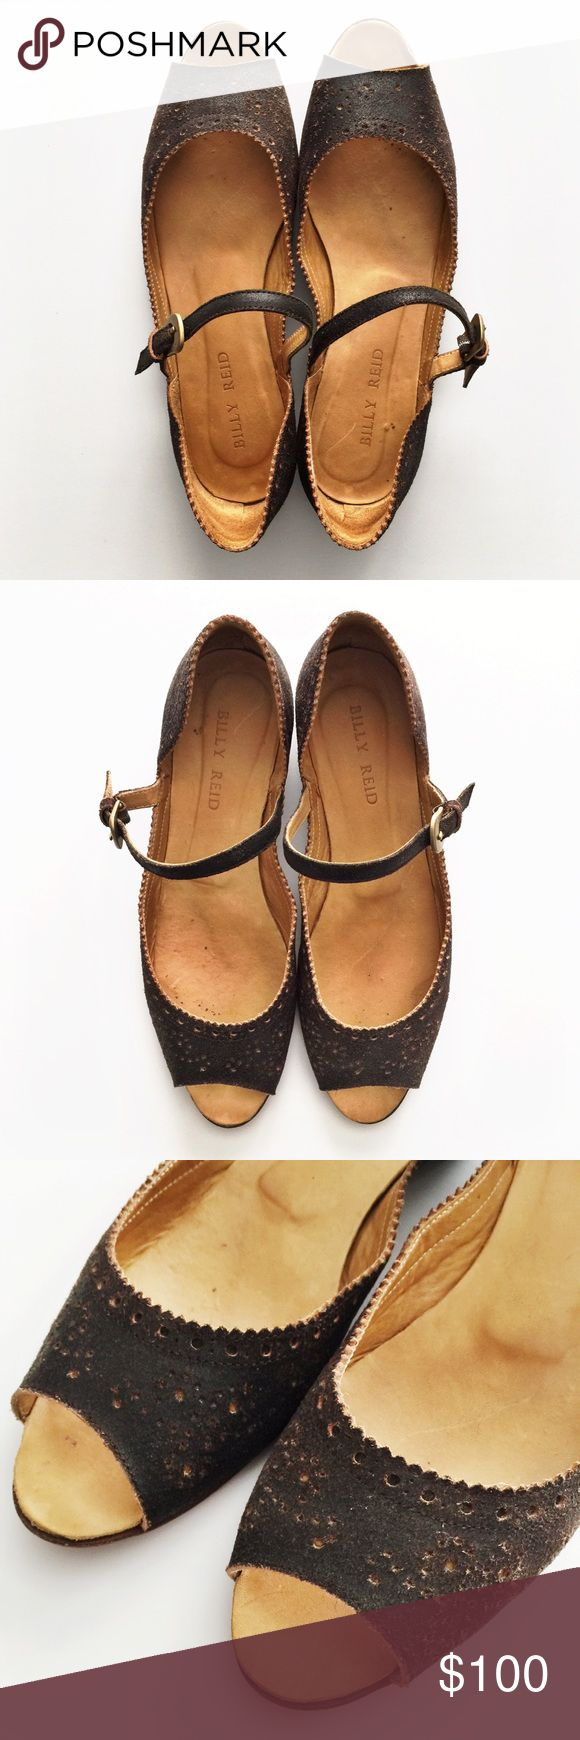 Billy Reid Leather Peep Toe Flats Handmade in Italy. Real leather. Distressed finish with perforated decorative design. Lovingly worn. Billy Reid Shoes Flats & Loafers